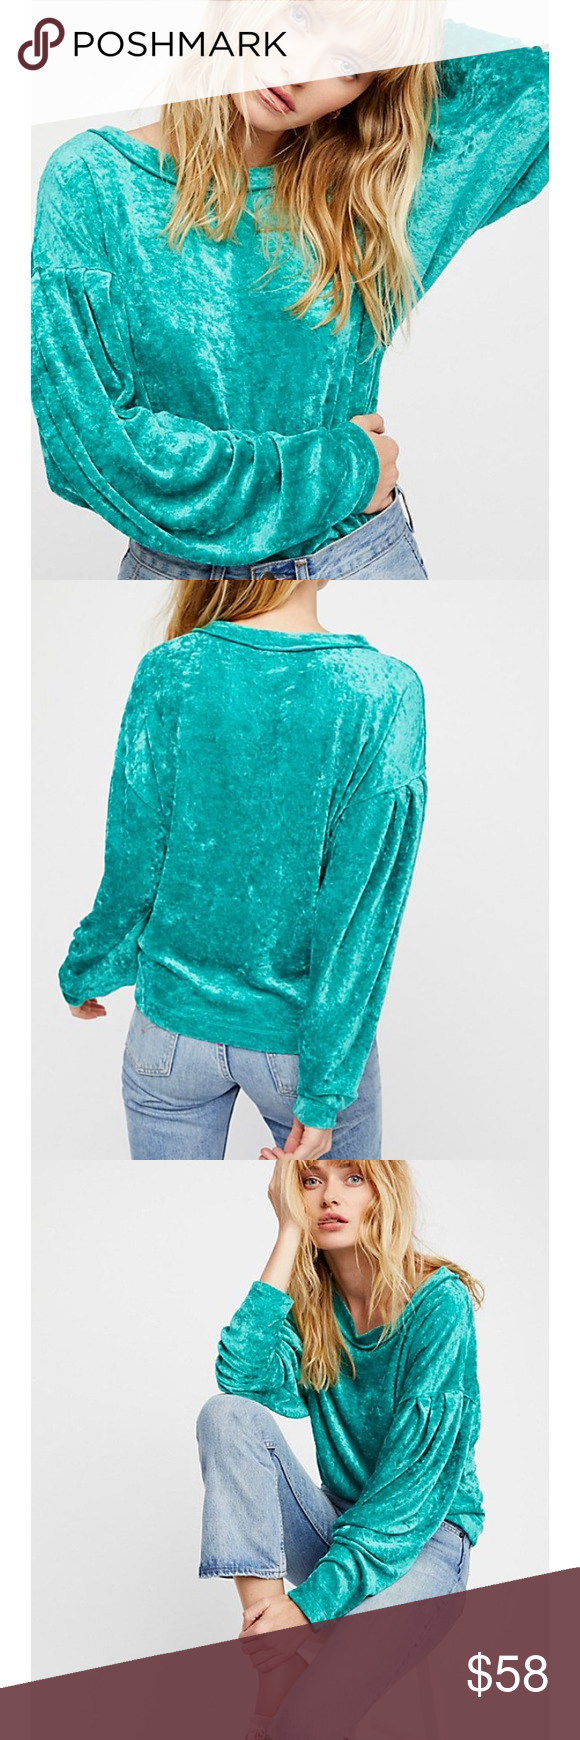 New Free People Luxe Velvet Seafoam Green Top We The Dolman Long Sleeve Layering Brand With Tags